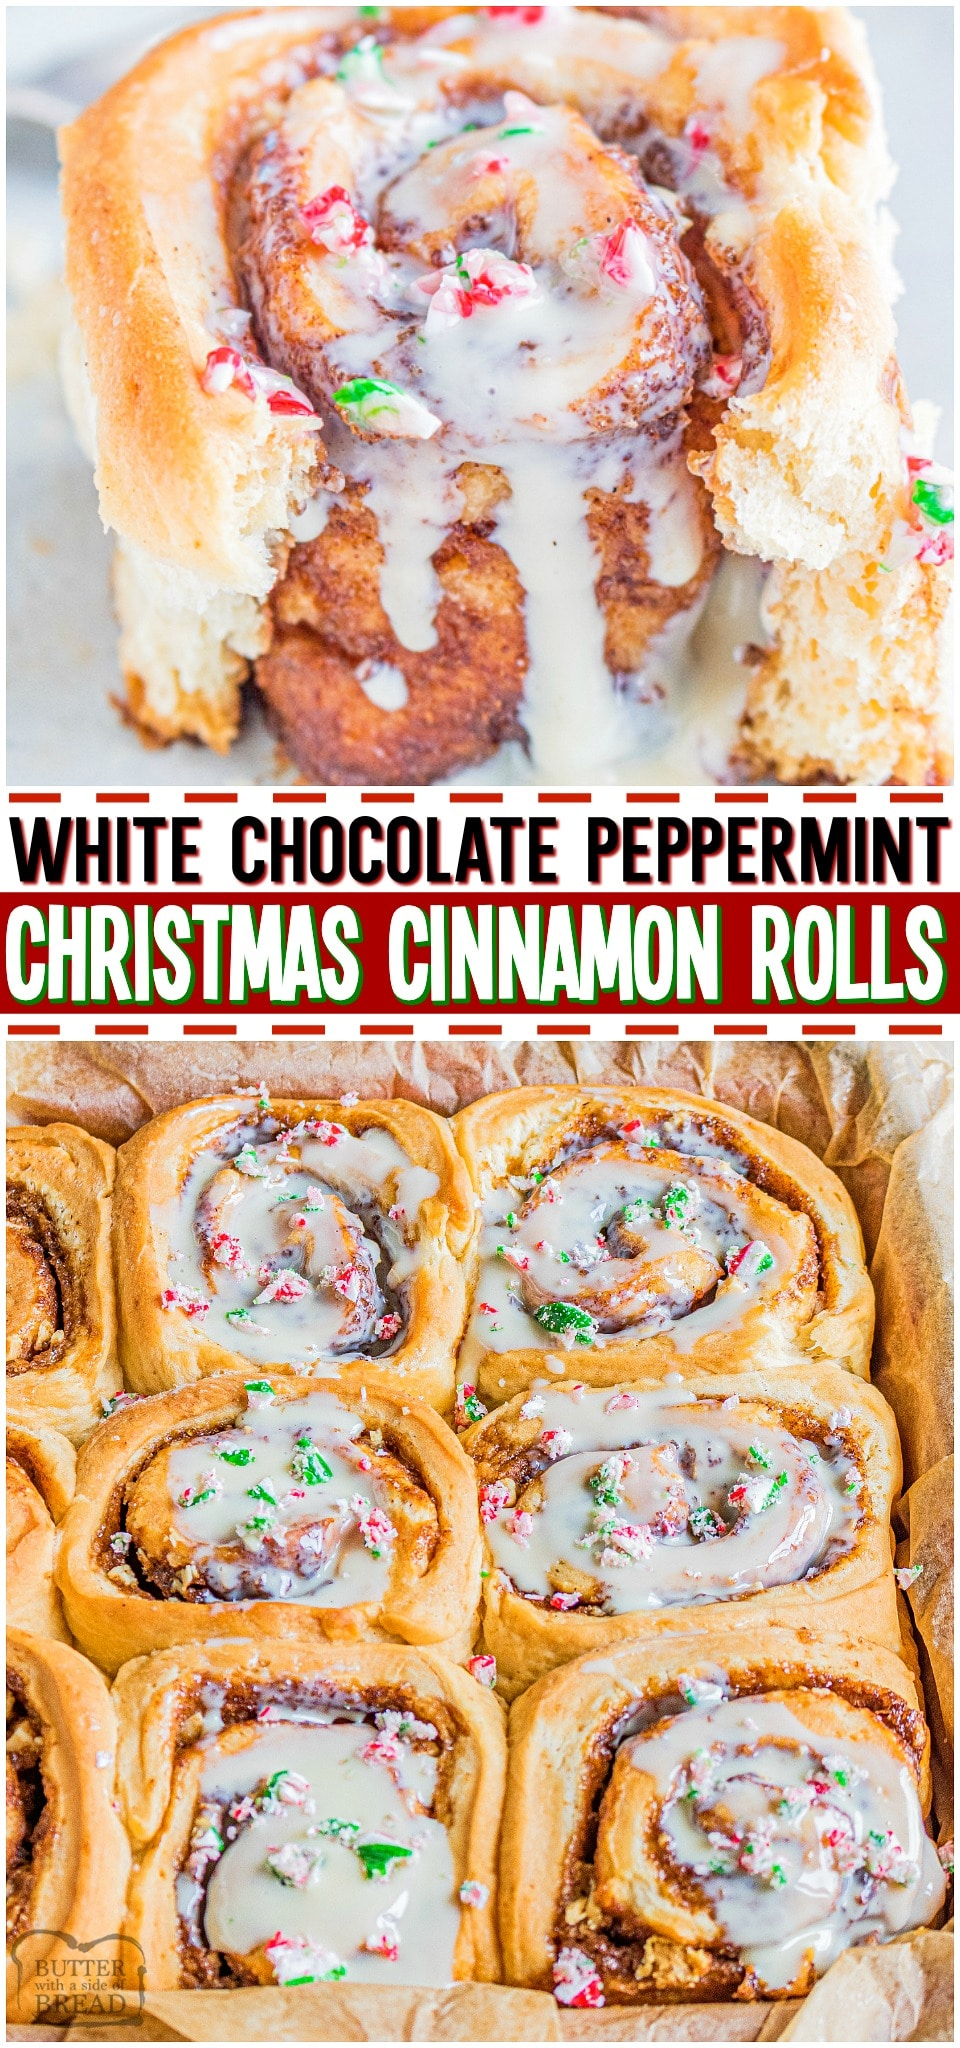 Christmas Cinnamon Rolls made with a cinnamon, white chocolate filling and topped with a simple peppermint vanilla glaze! Celebrate Christmas morning with this festive homemade Cinnamon Roll recipe!#Christmas #holidays #baking #breakfast #CinnamonRolls #Peppermint #easyrecipe from BUTTER WITH A SIDE OF BREAD